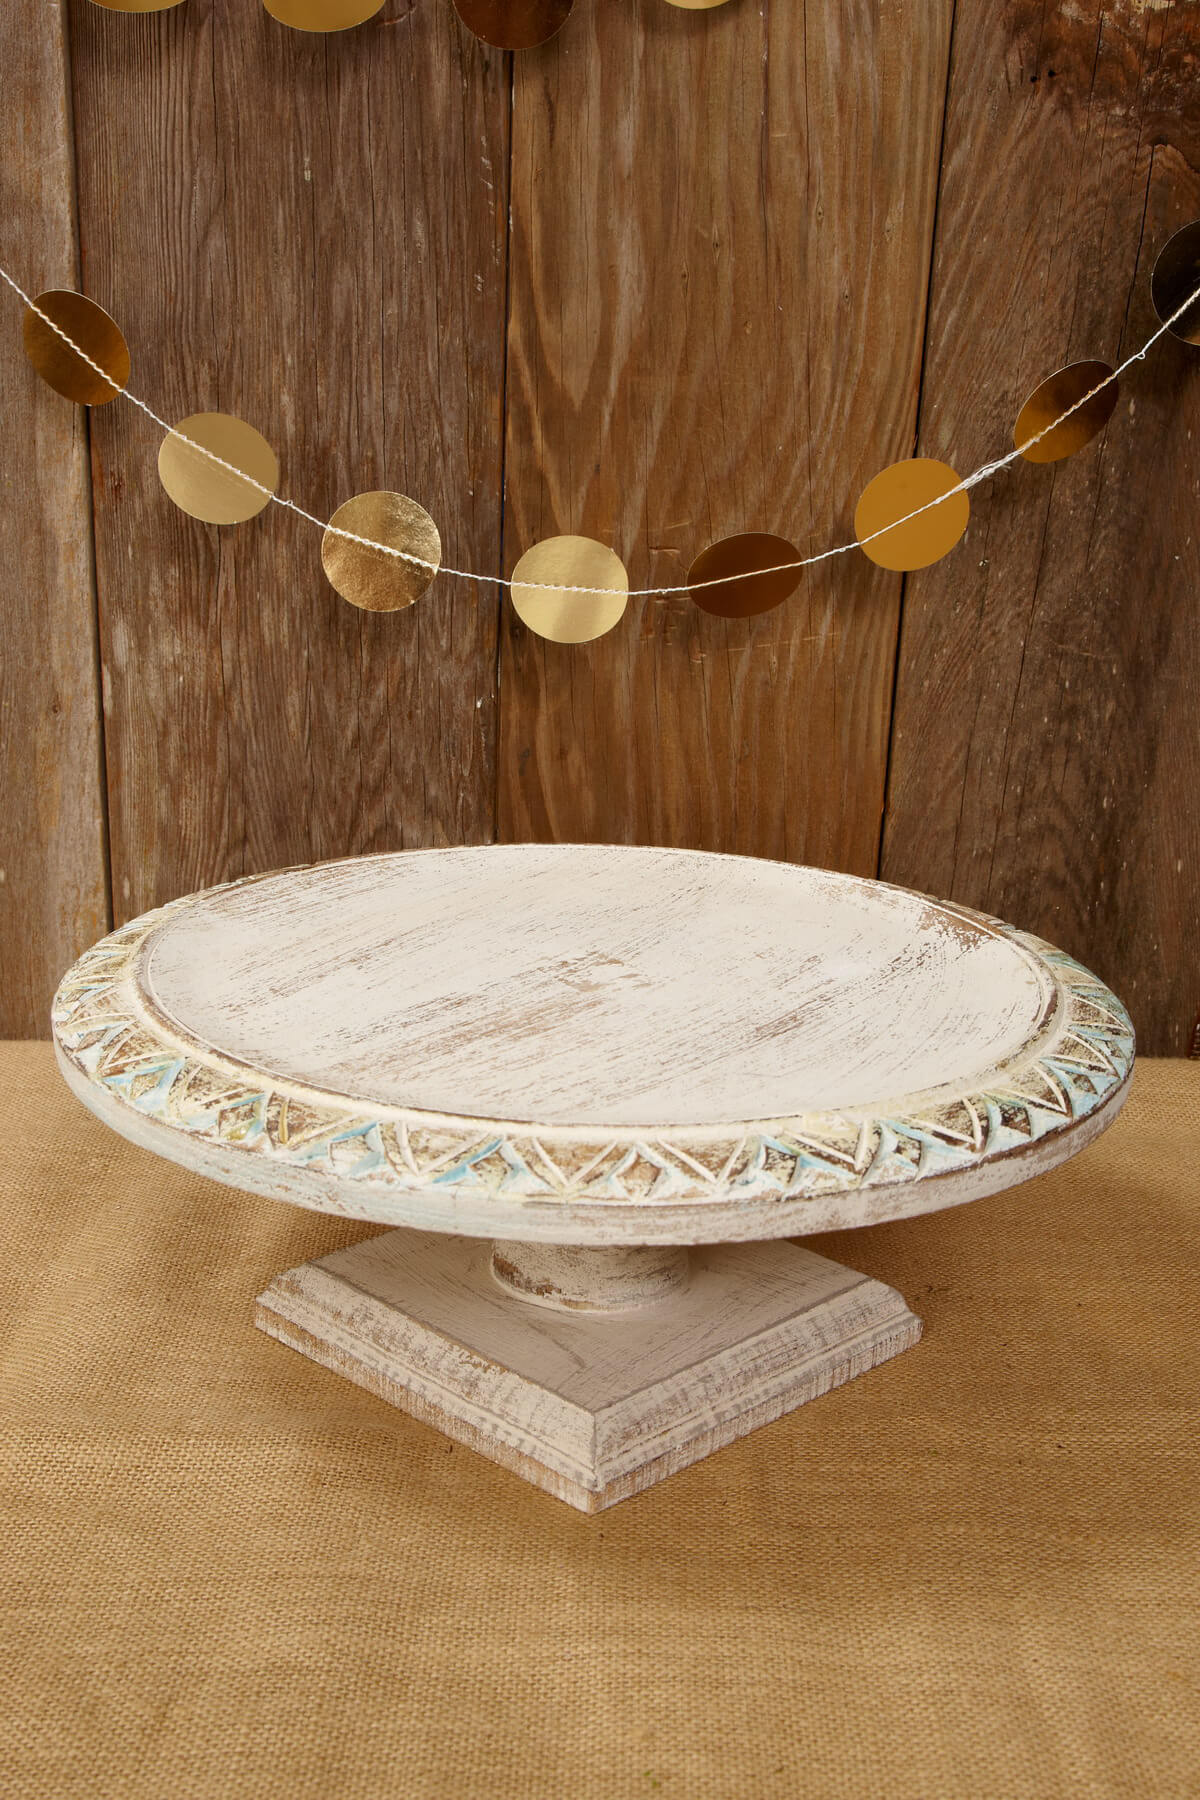 Wood Shabby Chic Cake Stand 15 . Full resolution  portrait, nominally Width 1200 Height 1800 pixels, portrait with #452812.